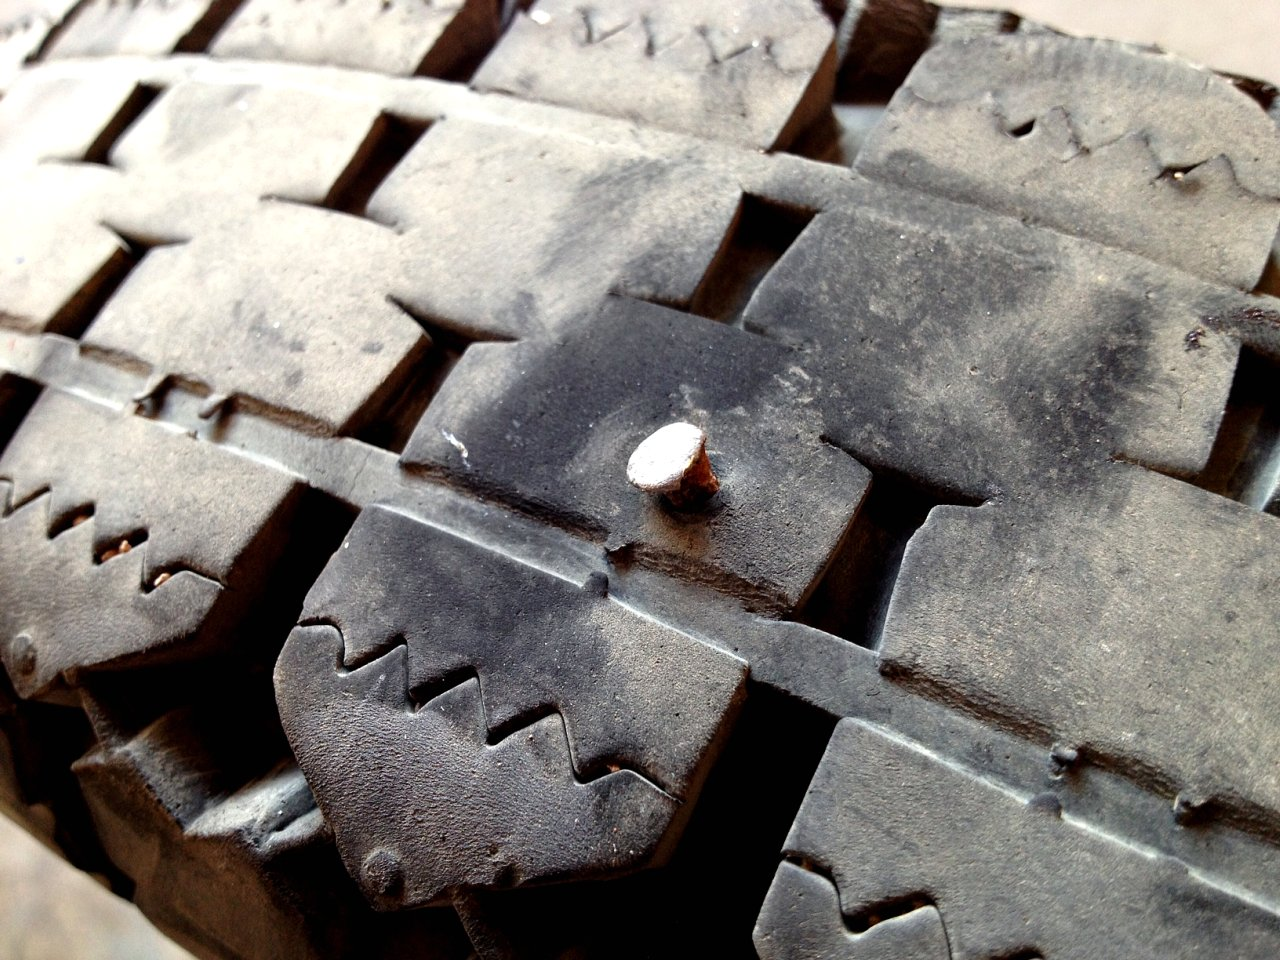 Dangers Of Nail In Tire@^*